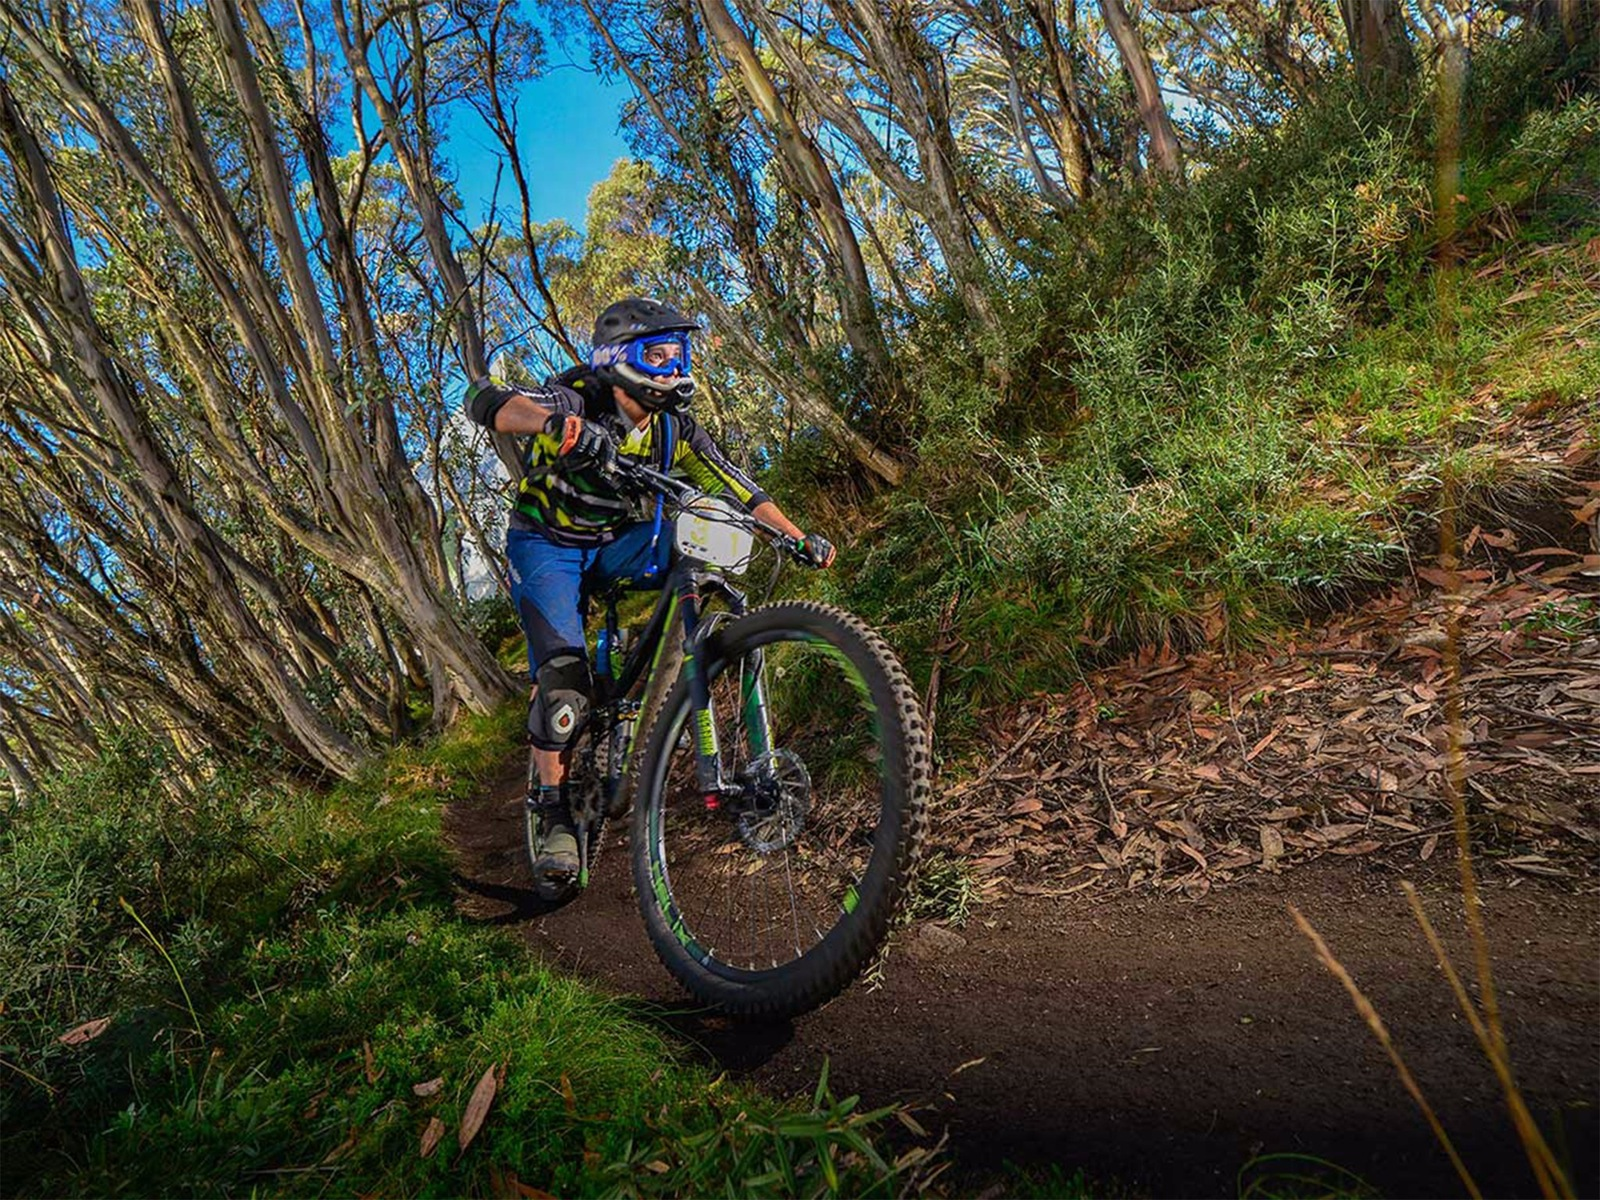 GT Bike Buller presented by Alpinestars